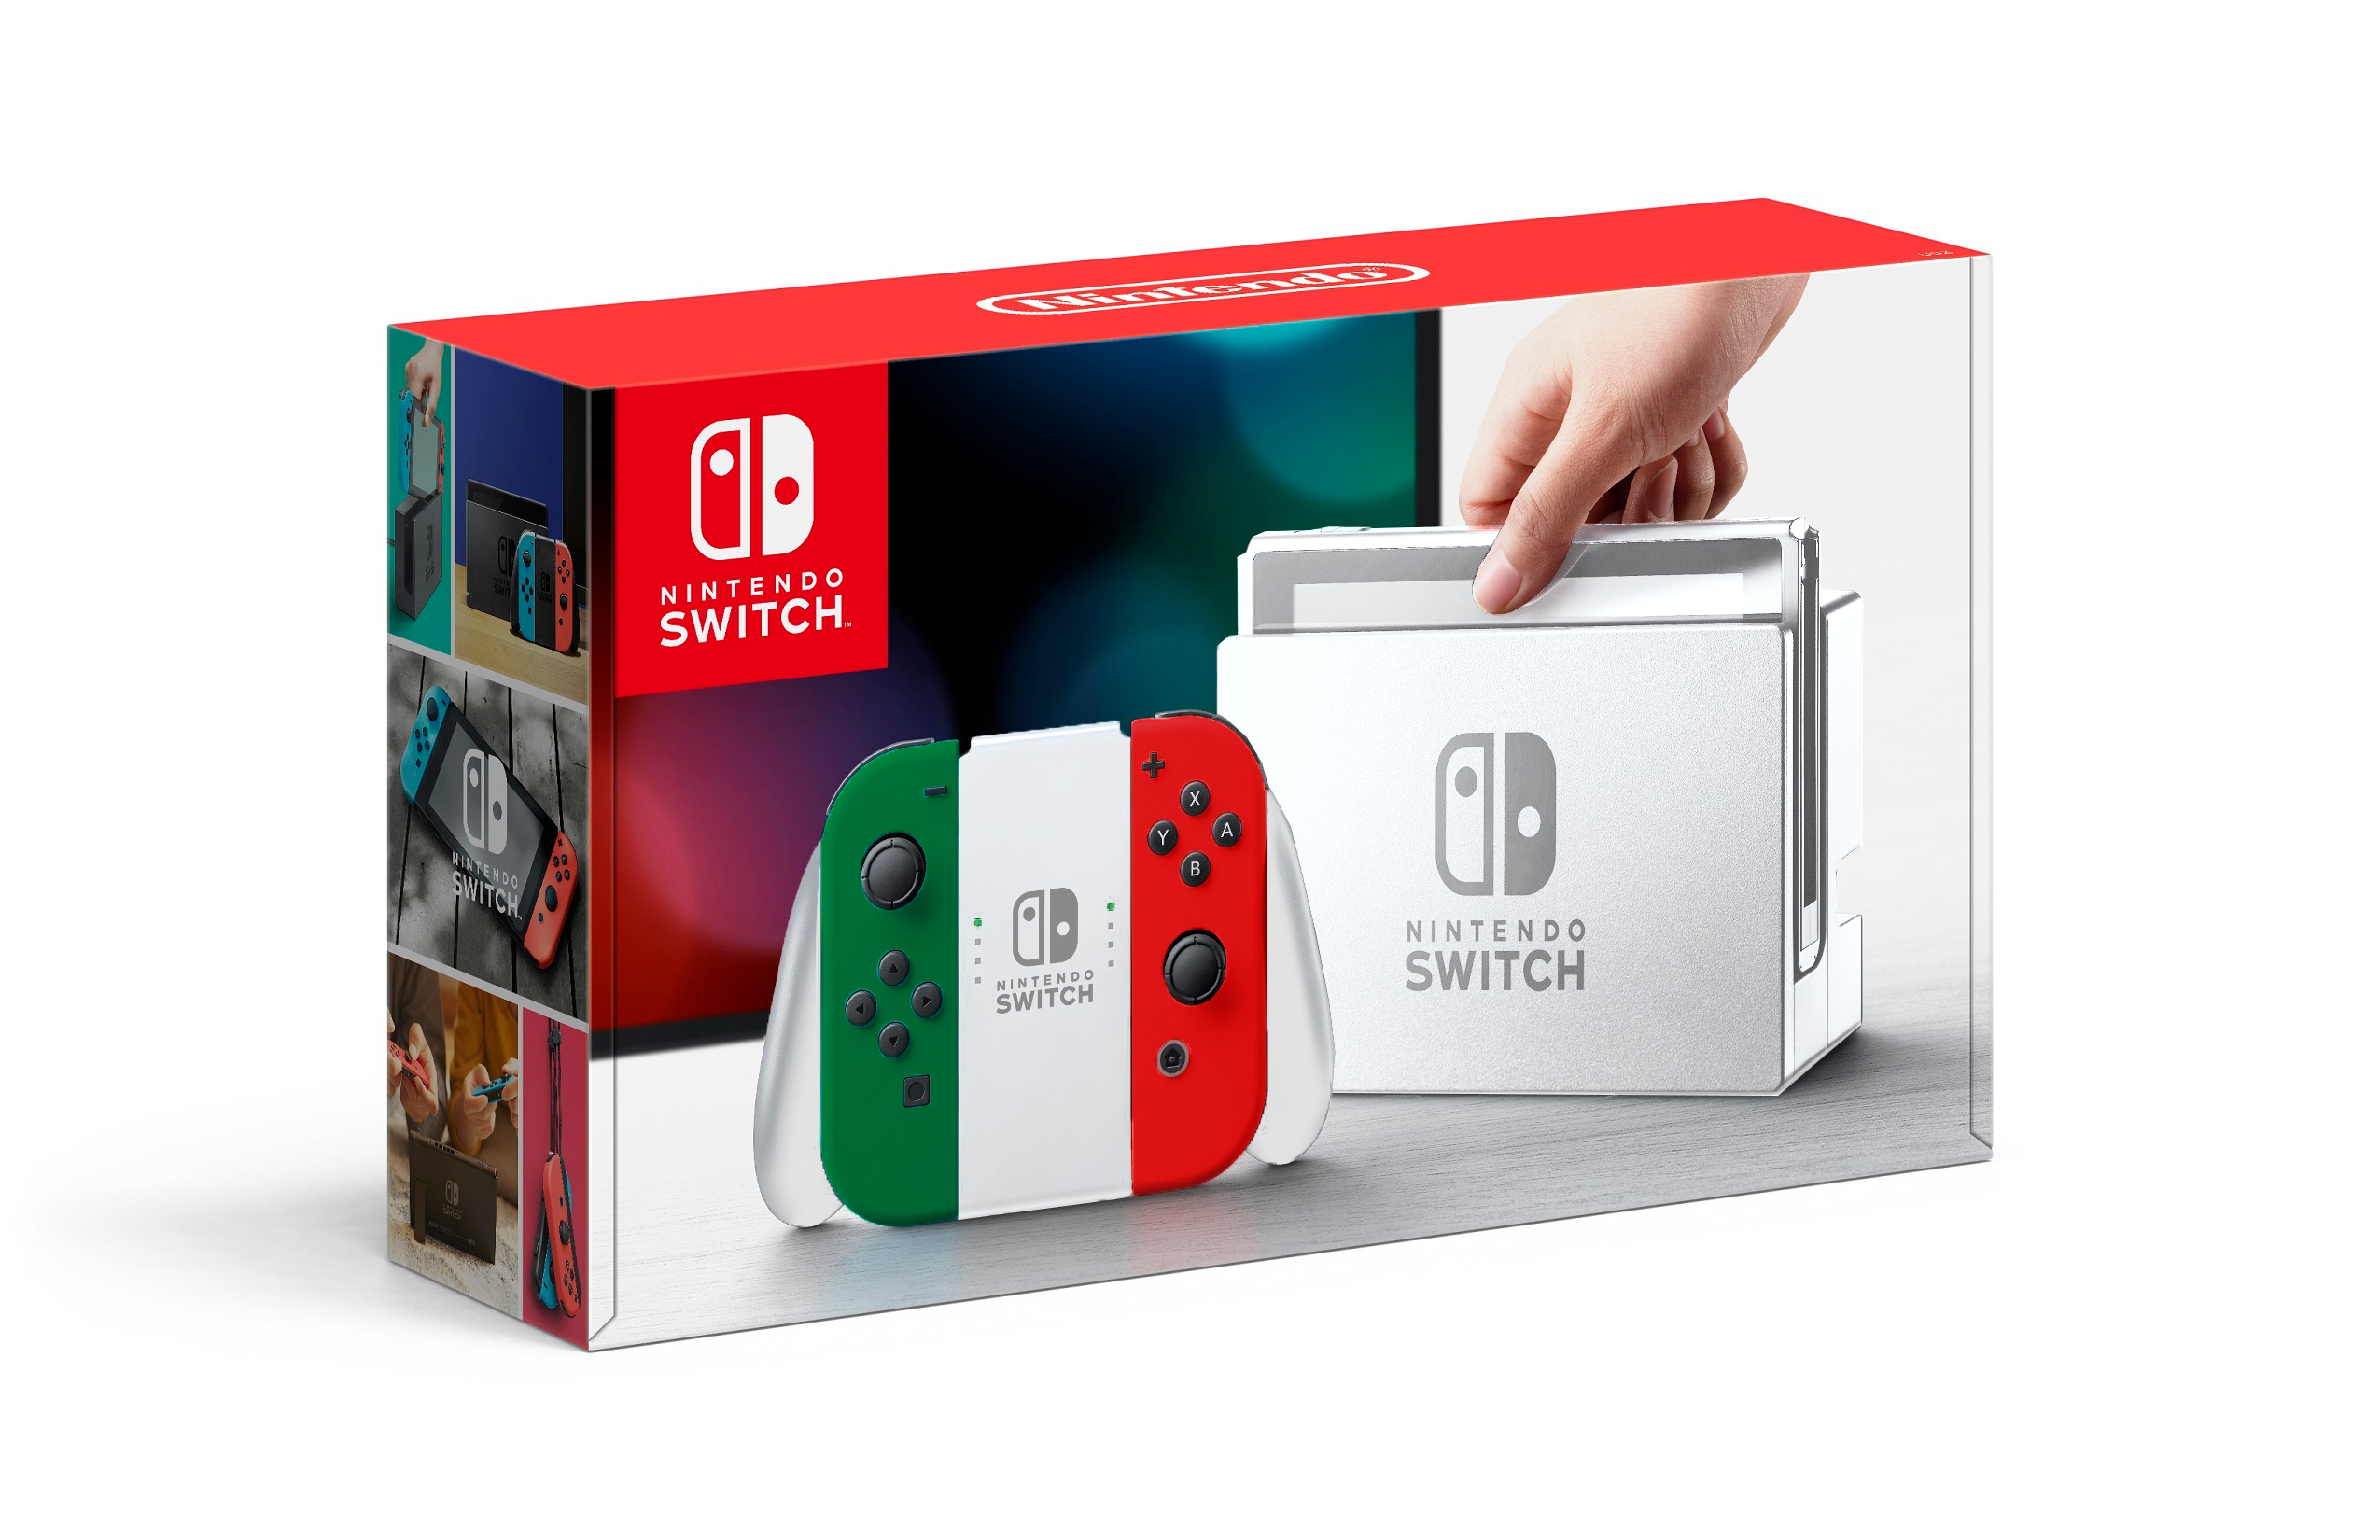 Nintendo Switch selling faster than Wii in Italy